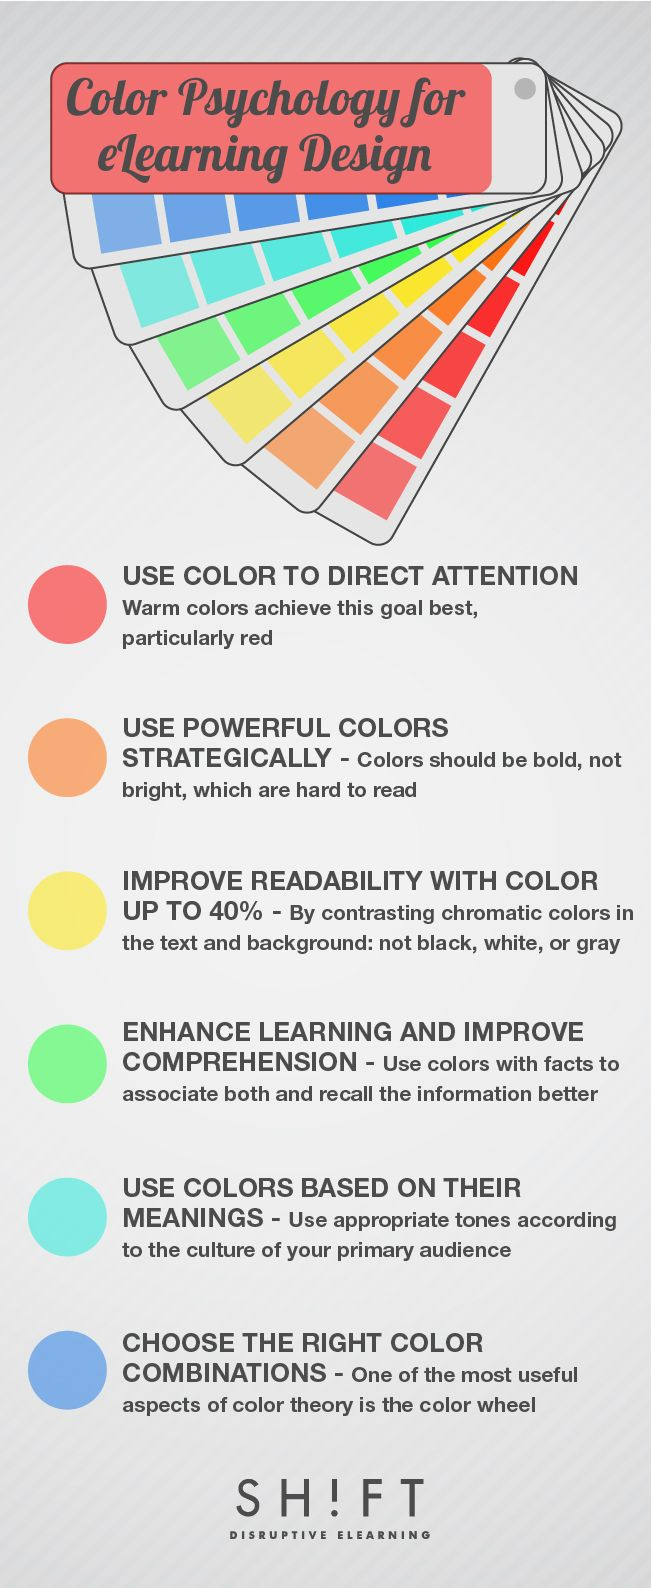 6 Tips To Use Colors When Designing eLearning Courses Infographic -  http://elearninginfographics